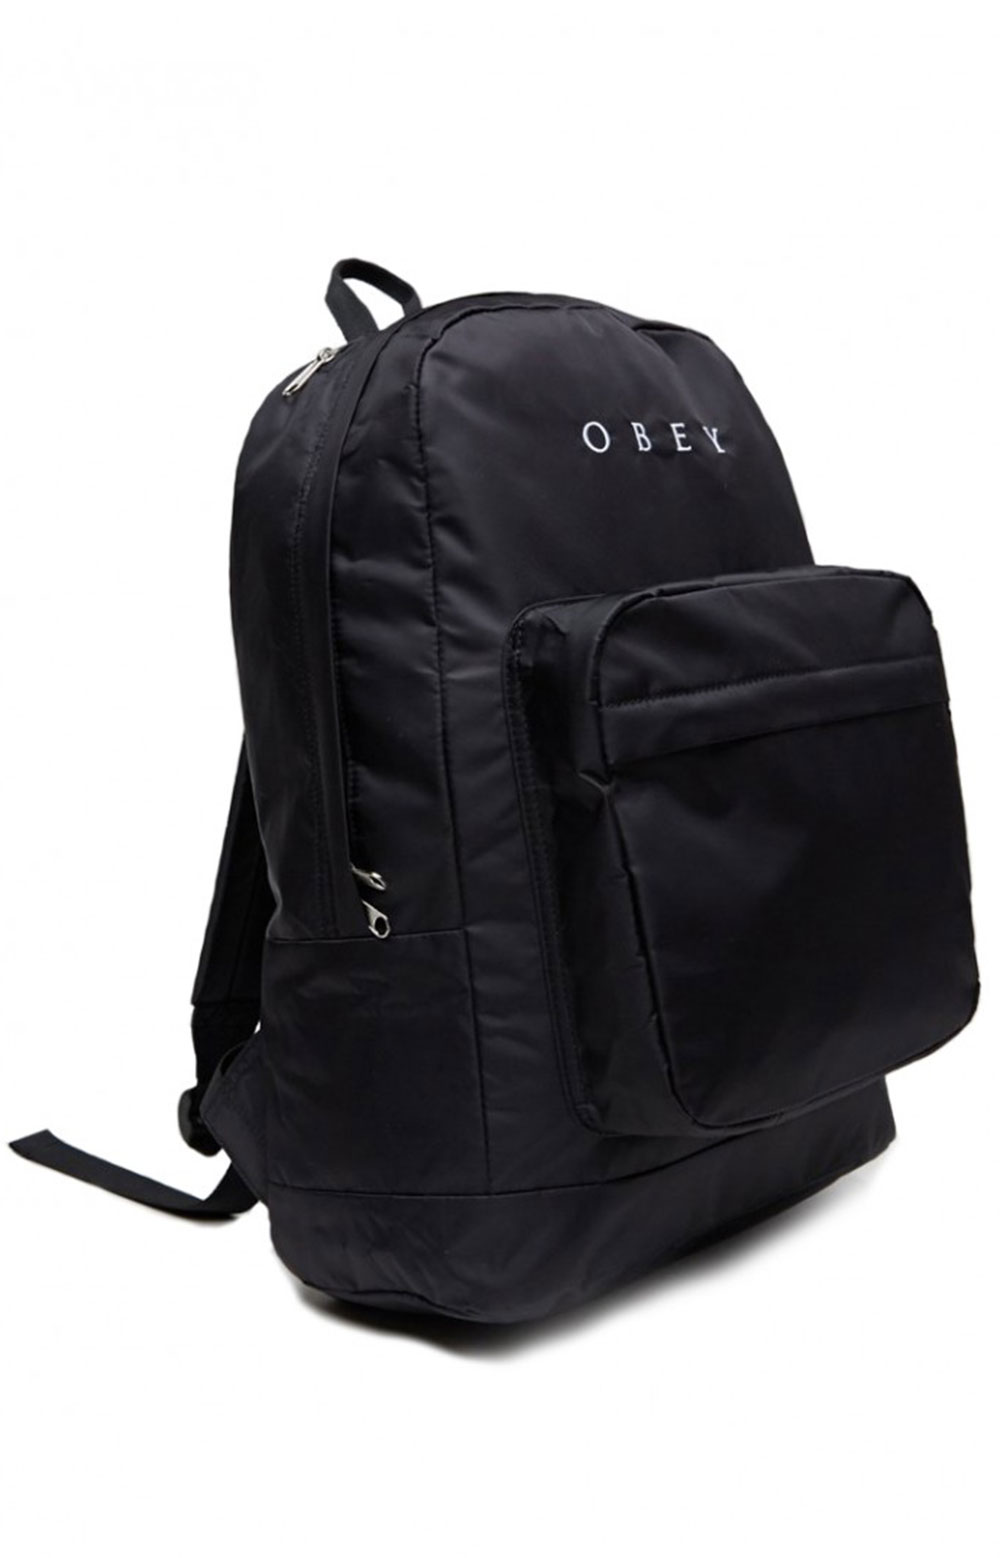 Drop Out Backpack - Black 3